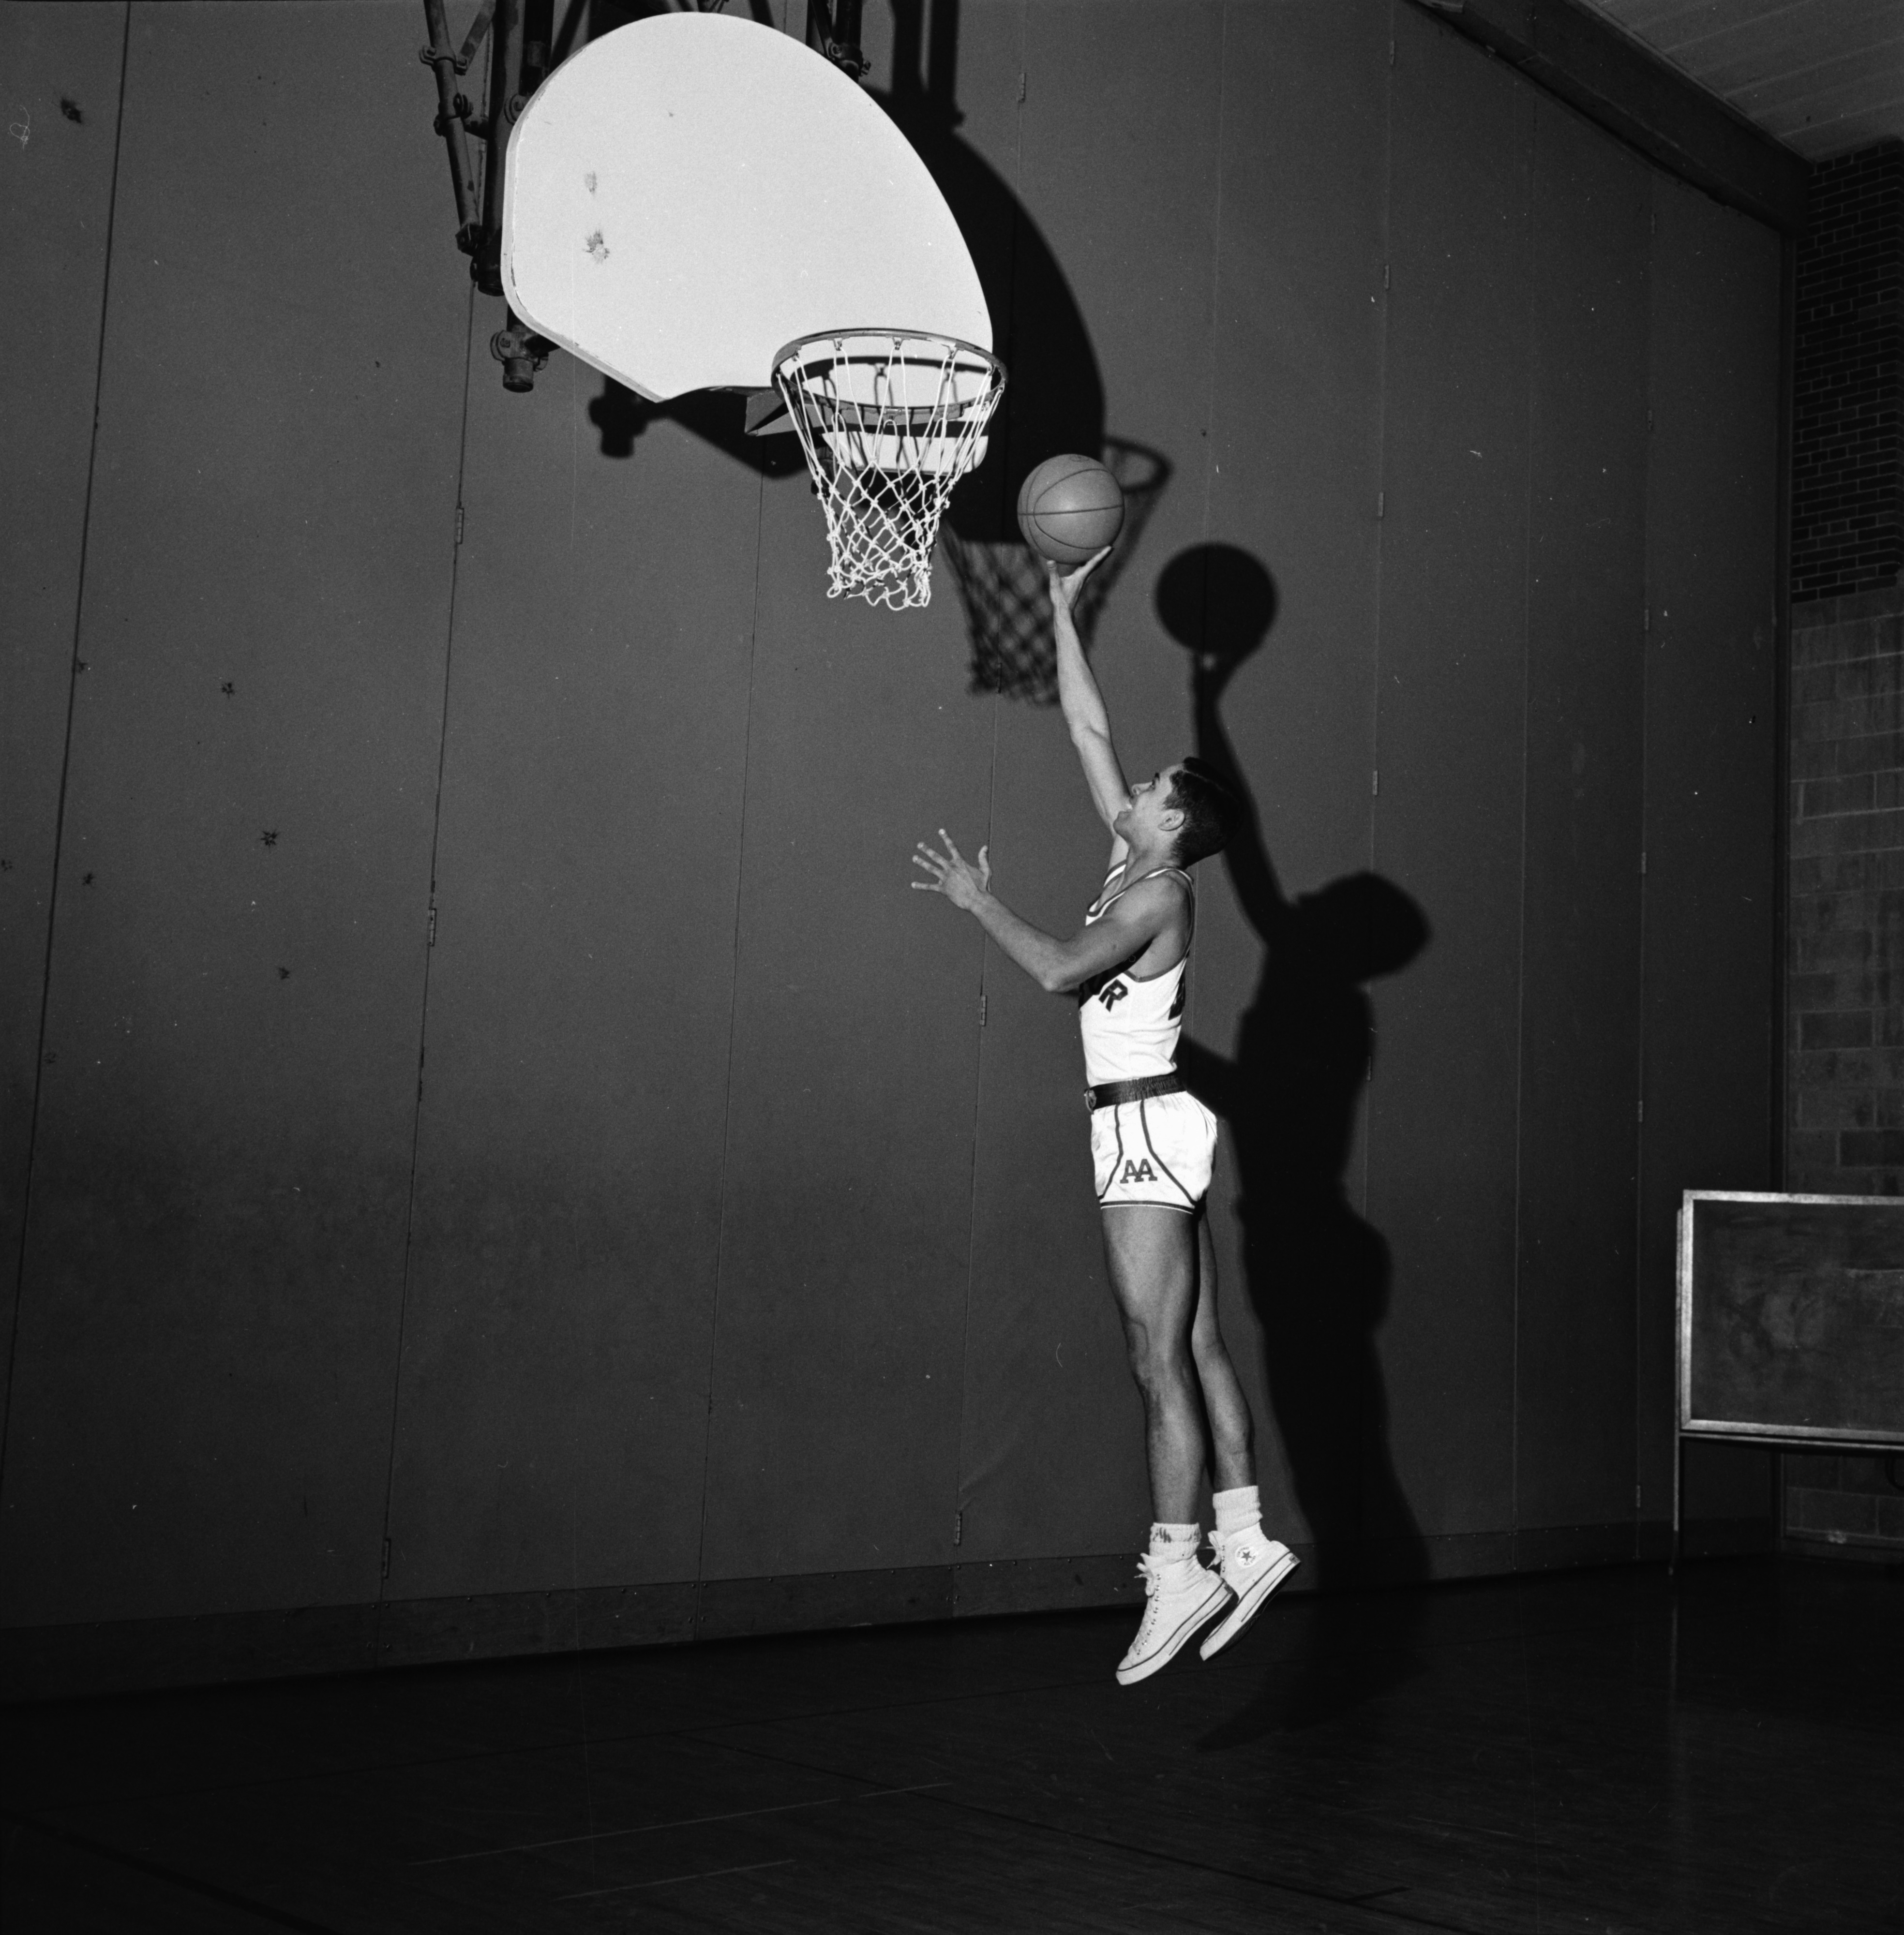 Harold Simons is Standout for Ann Arbor High Basketball Team, March 1964 image